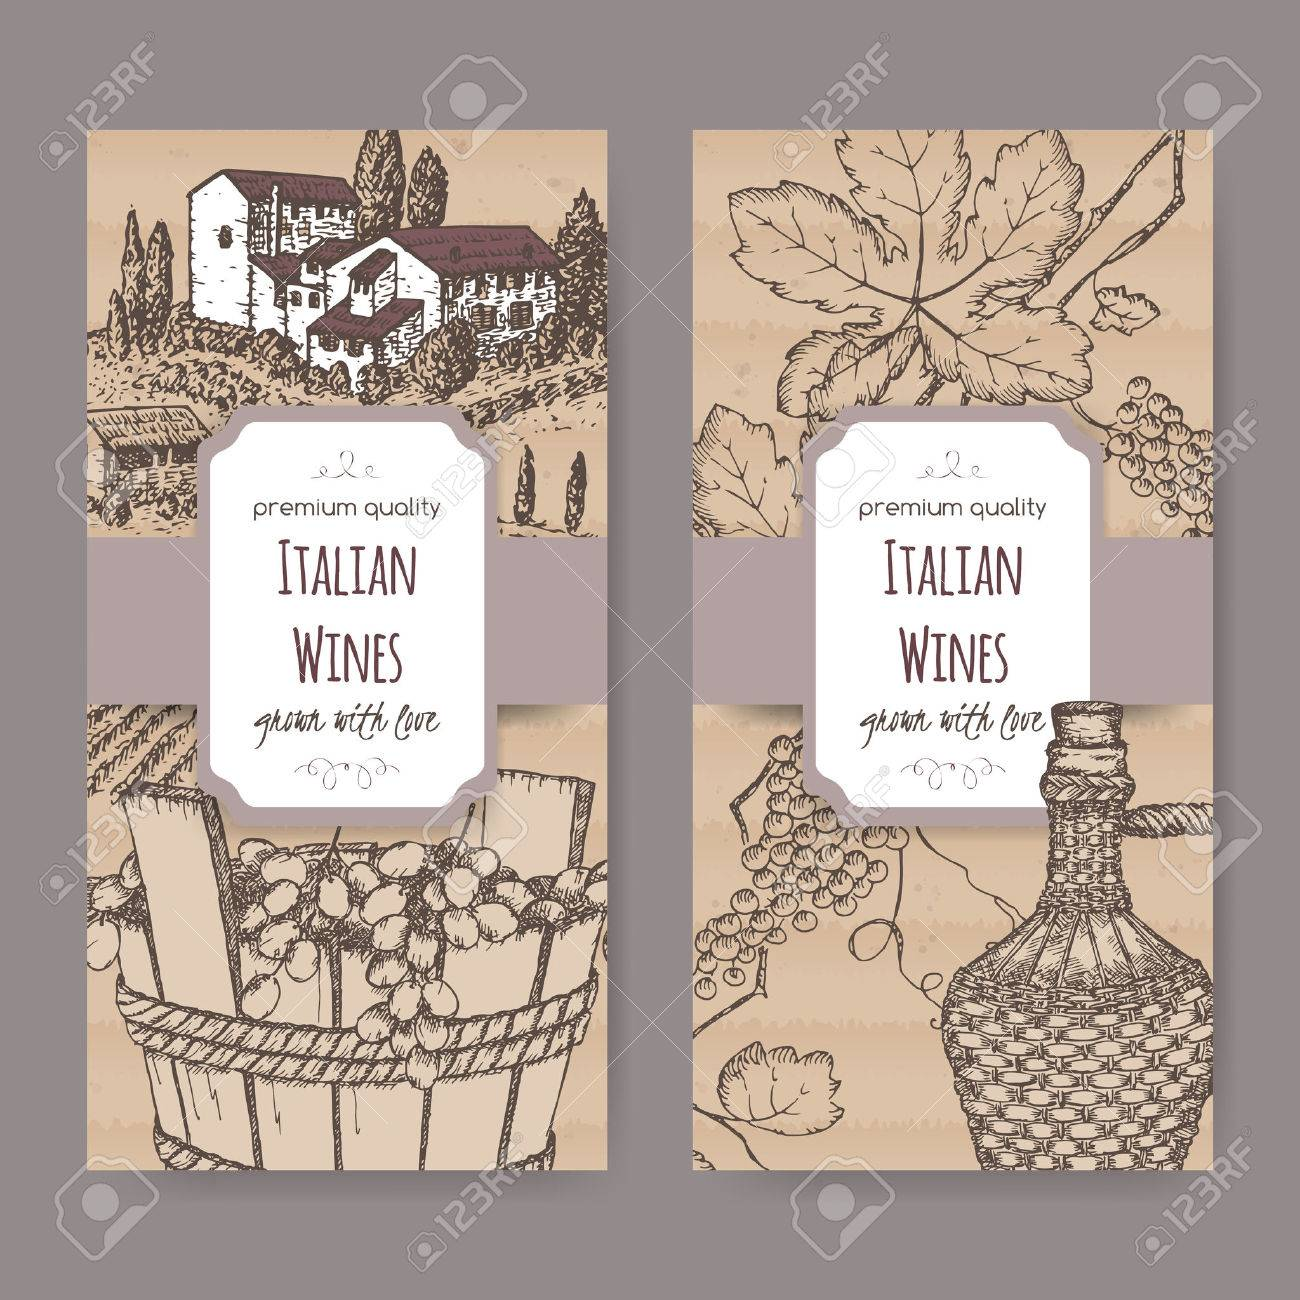 Set Of 2 Elegant Italian Wine Label Templates With Farmhouse, Vineyard, Wine  Bottle And  Free Wine Bottle Label Templates